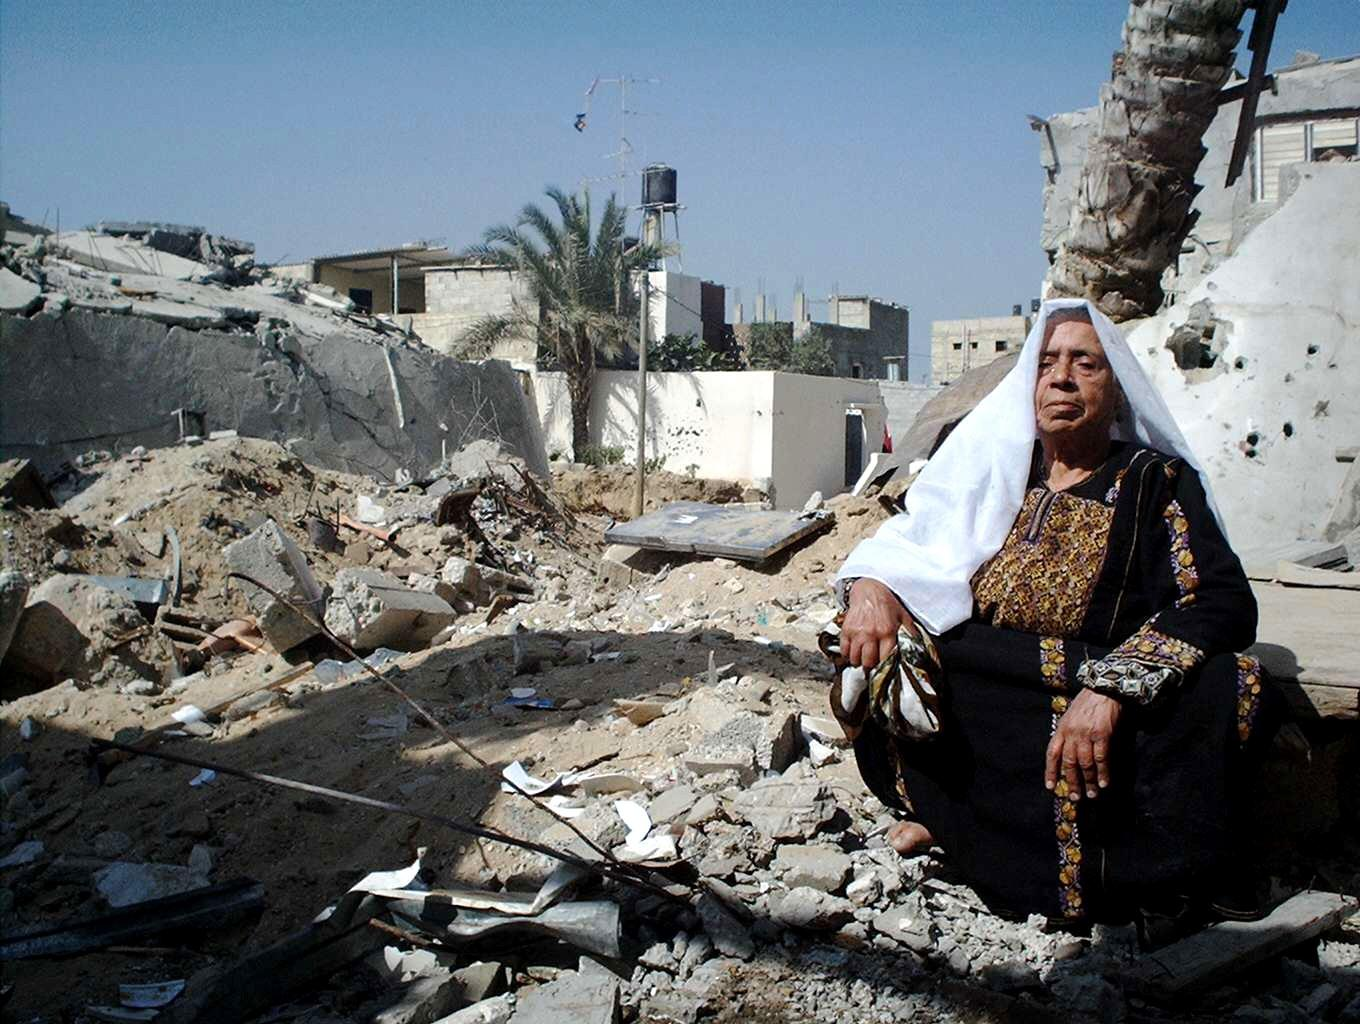 A Palestianian woman in Gaza, next to rubble created by the Israeli military, for her sitting pleasure, I assume.